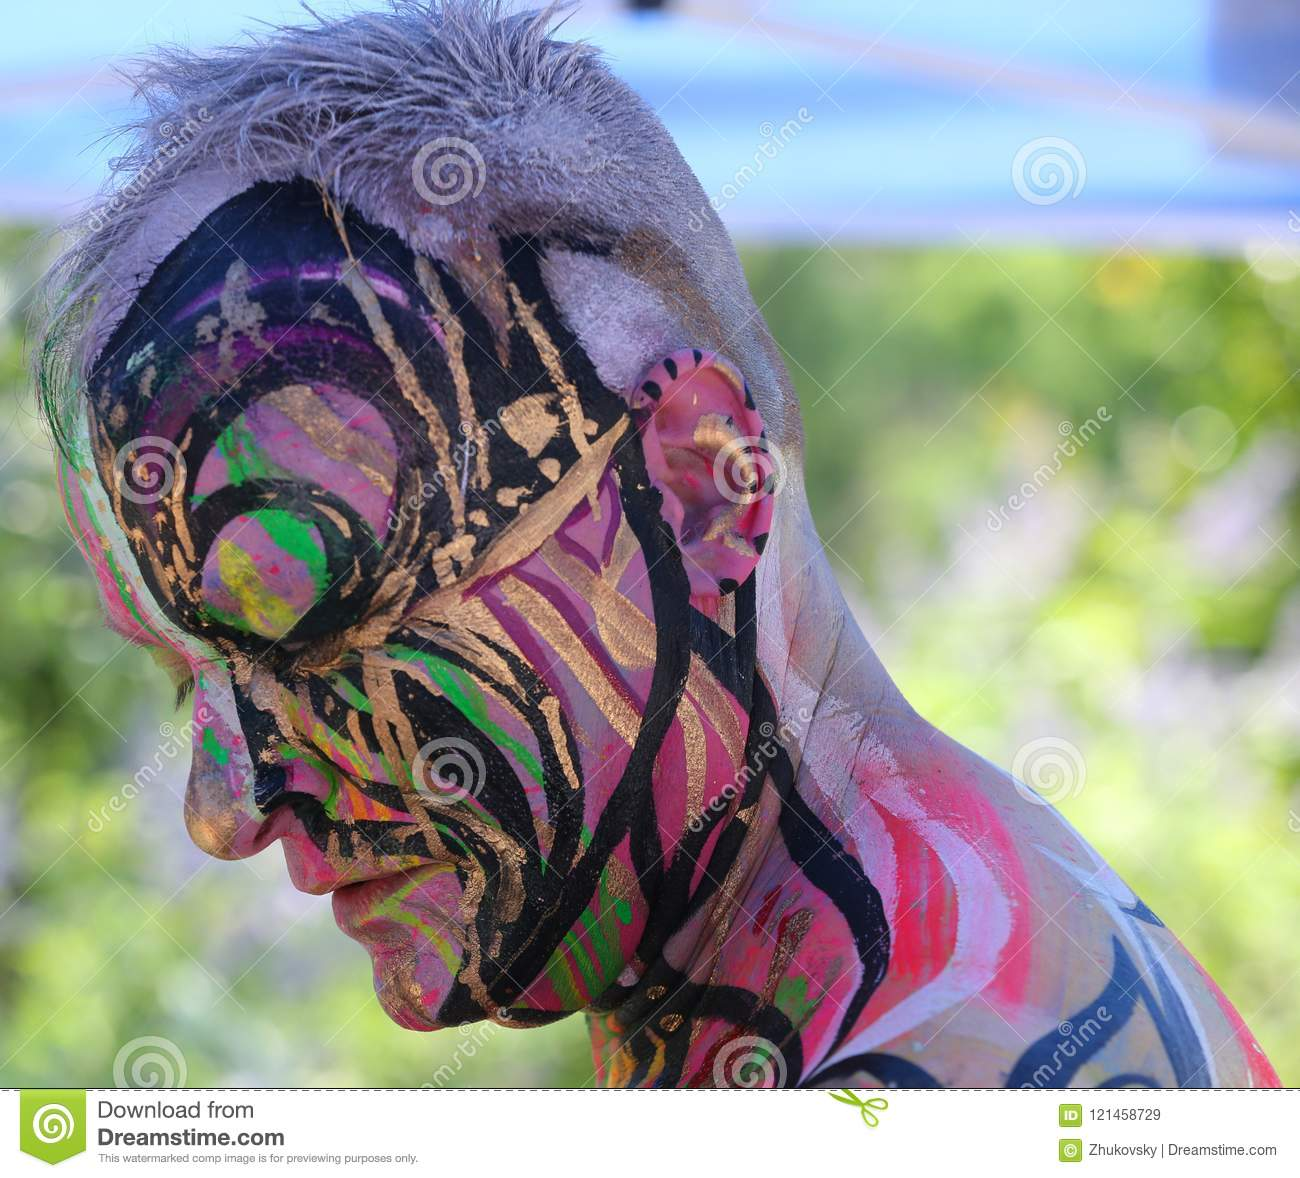 NYC Bodypainting Day. July 20, 2019. - Love Is Amor